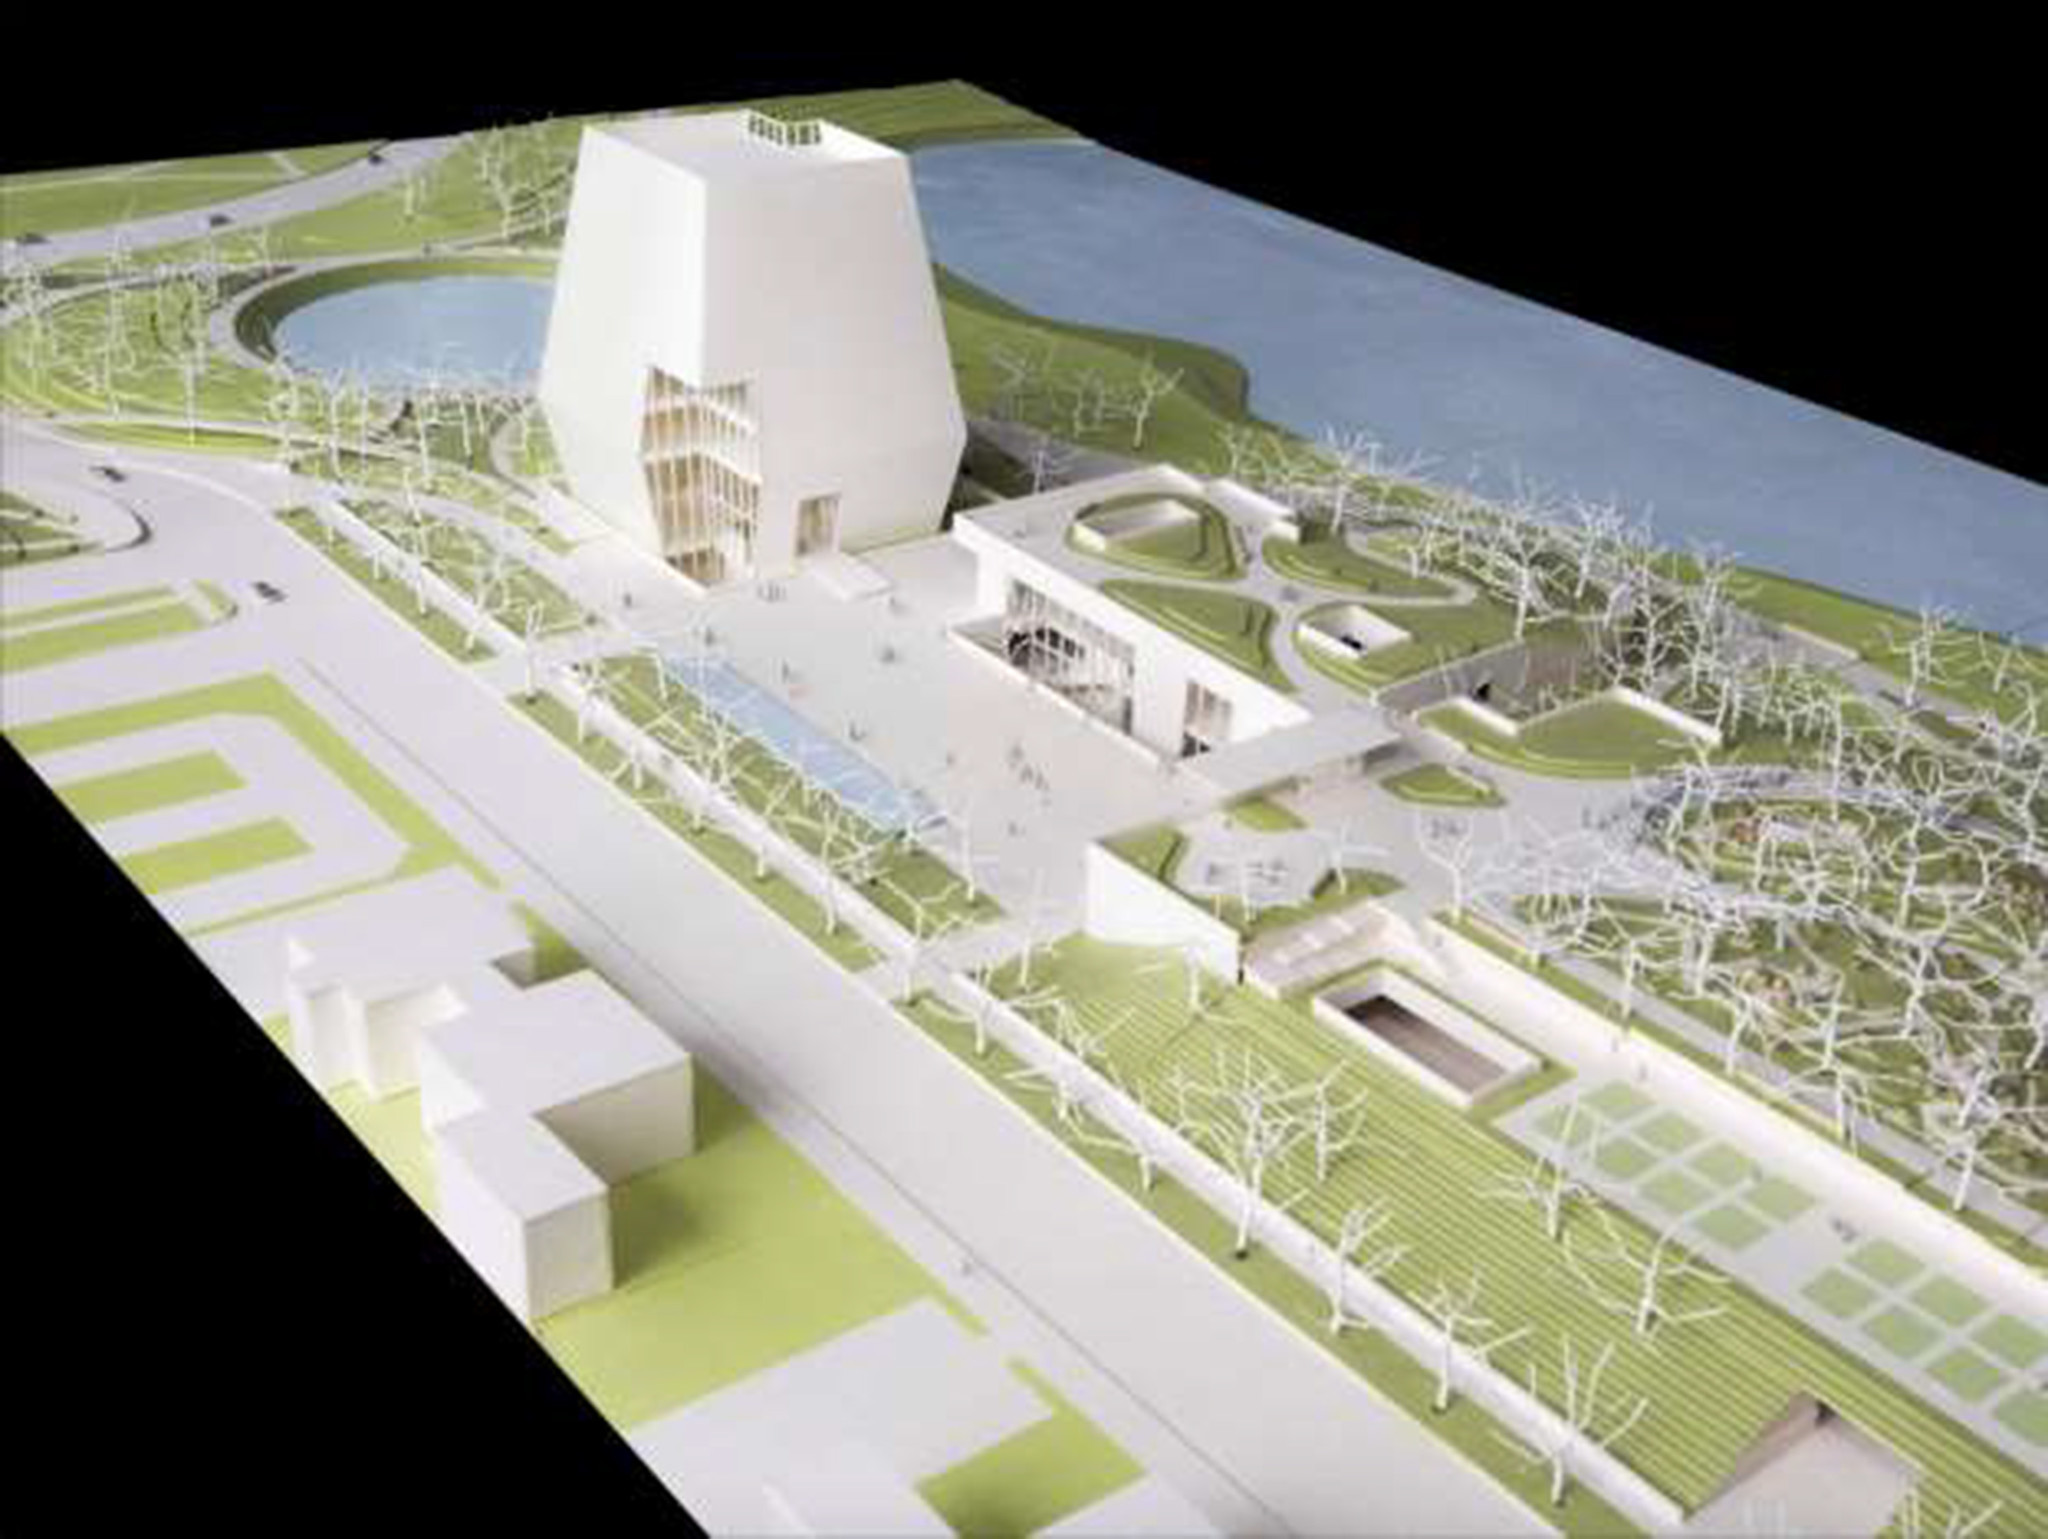 Looking north, a model showing the Obama Presidential Center.